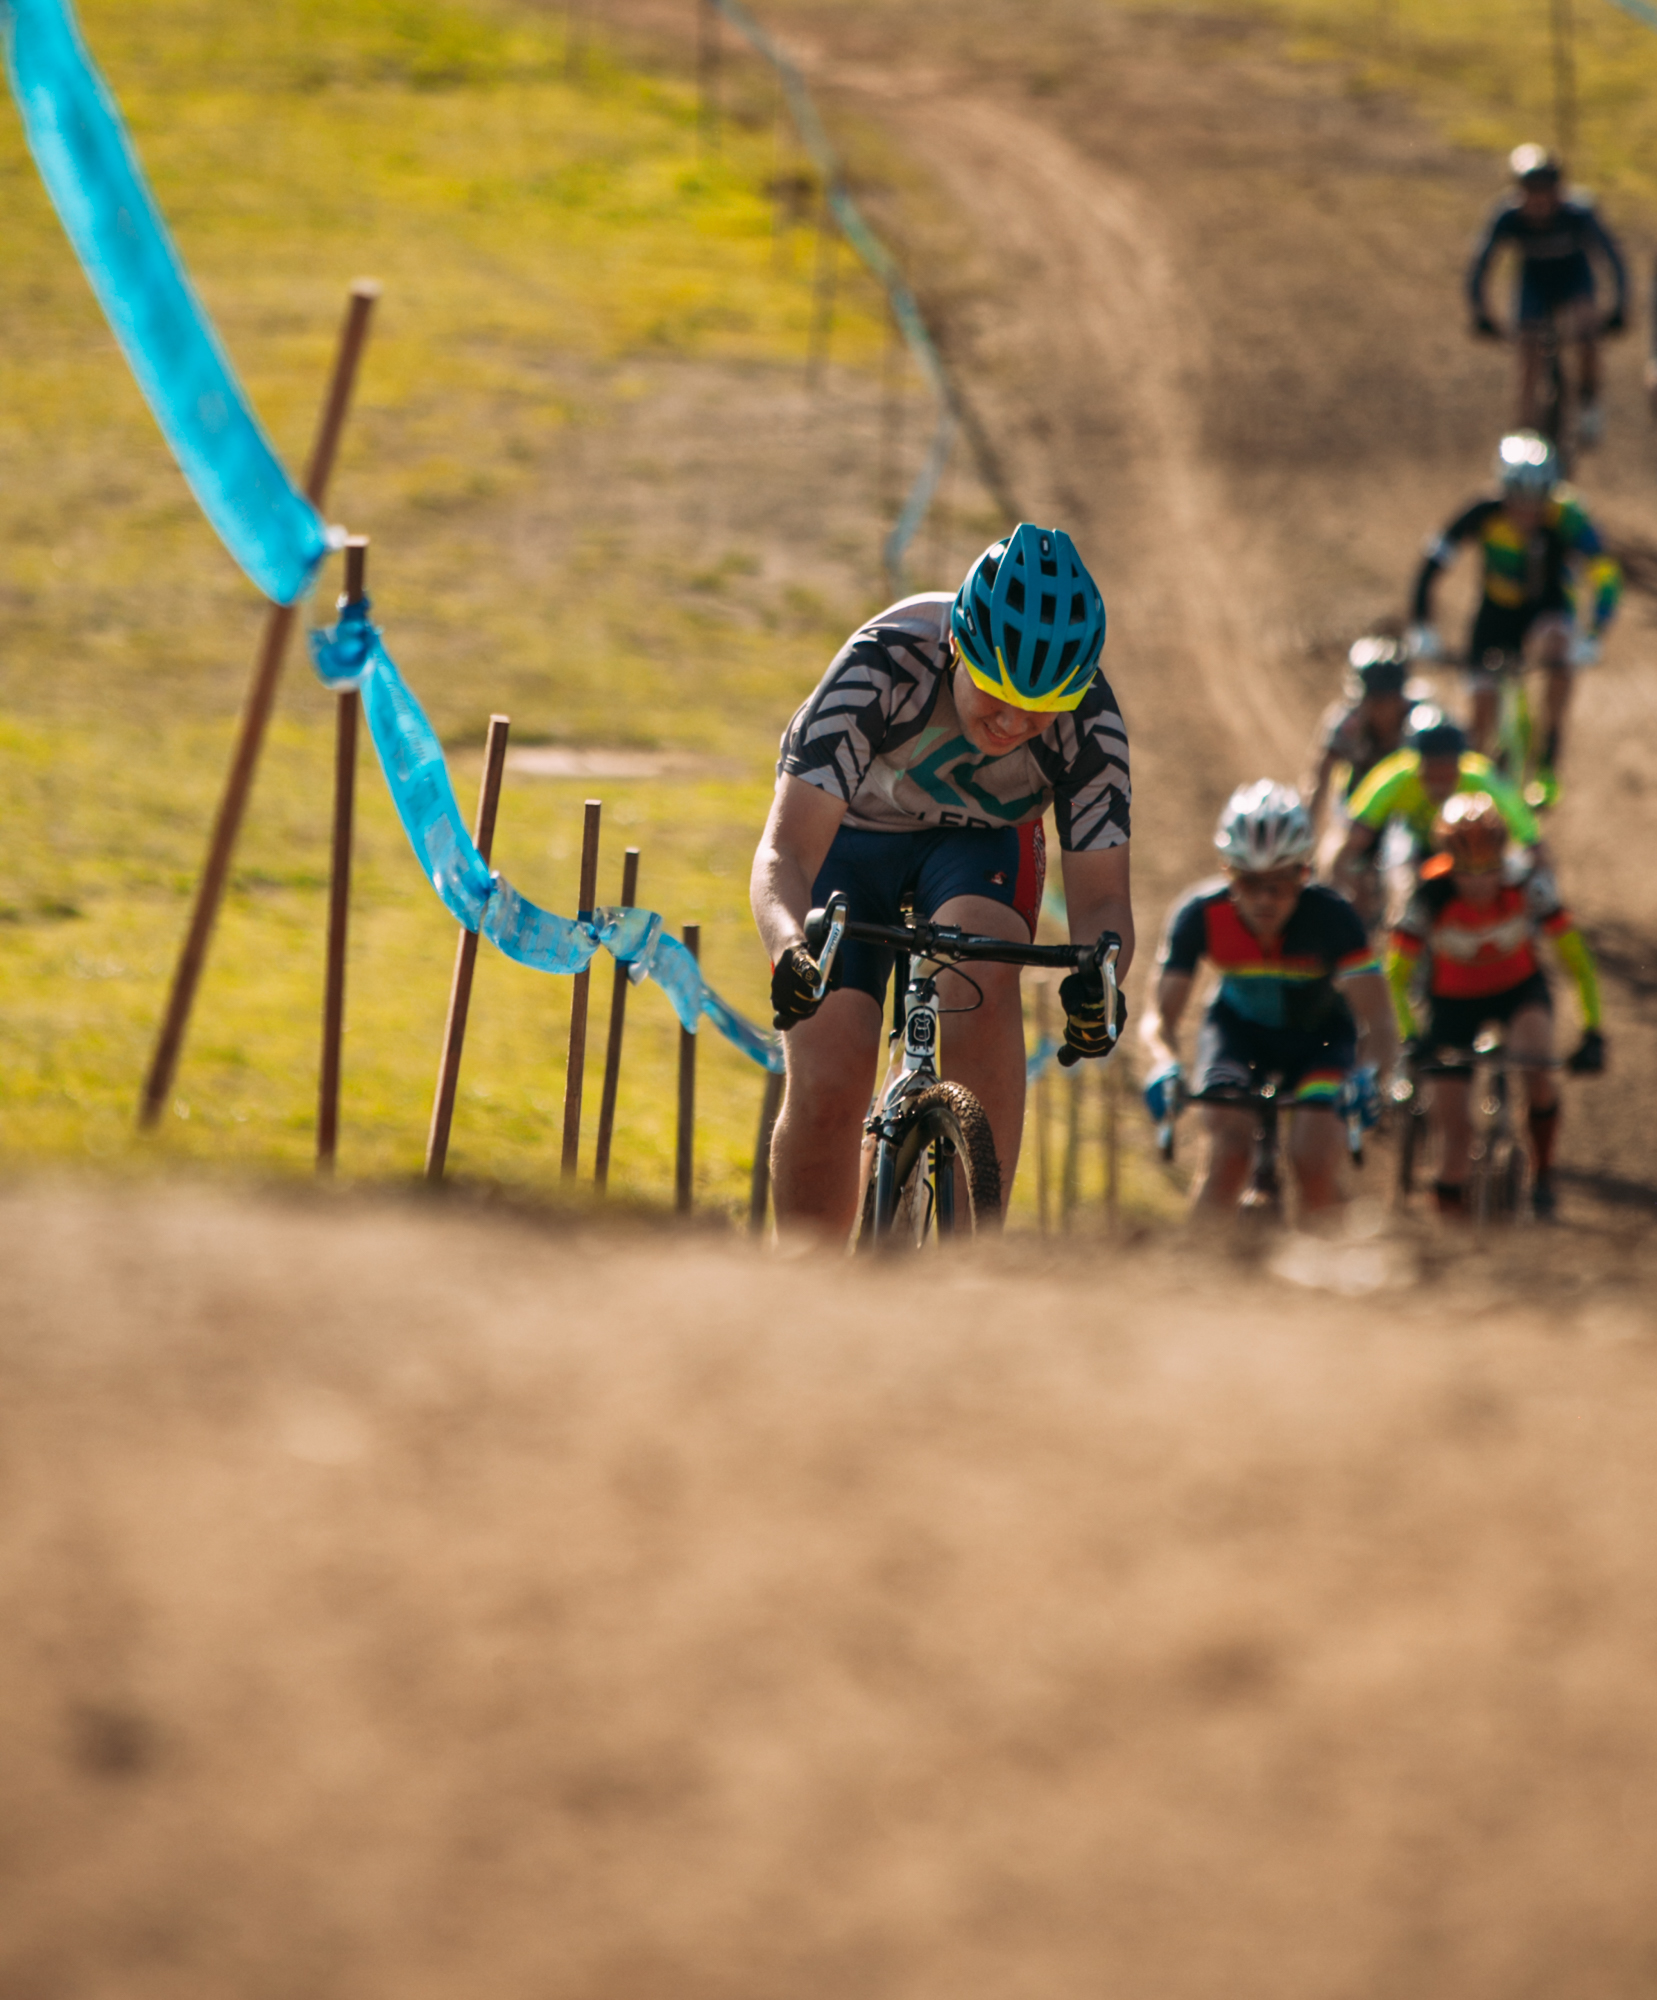 Cyclocross18_CCCX_RainierHS-206-mettlecycling.jpg